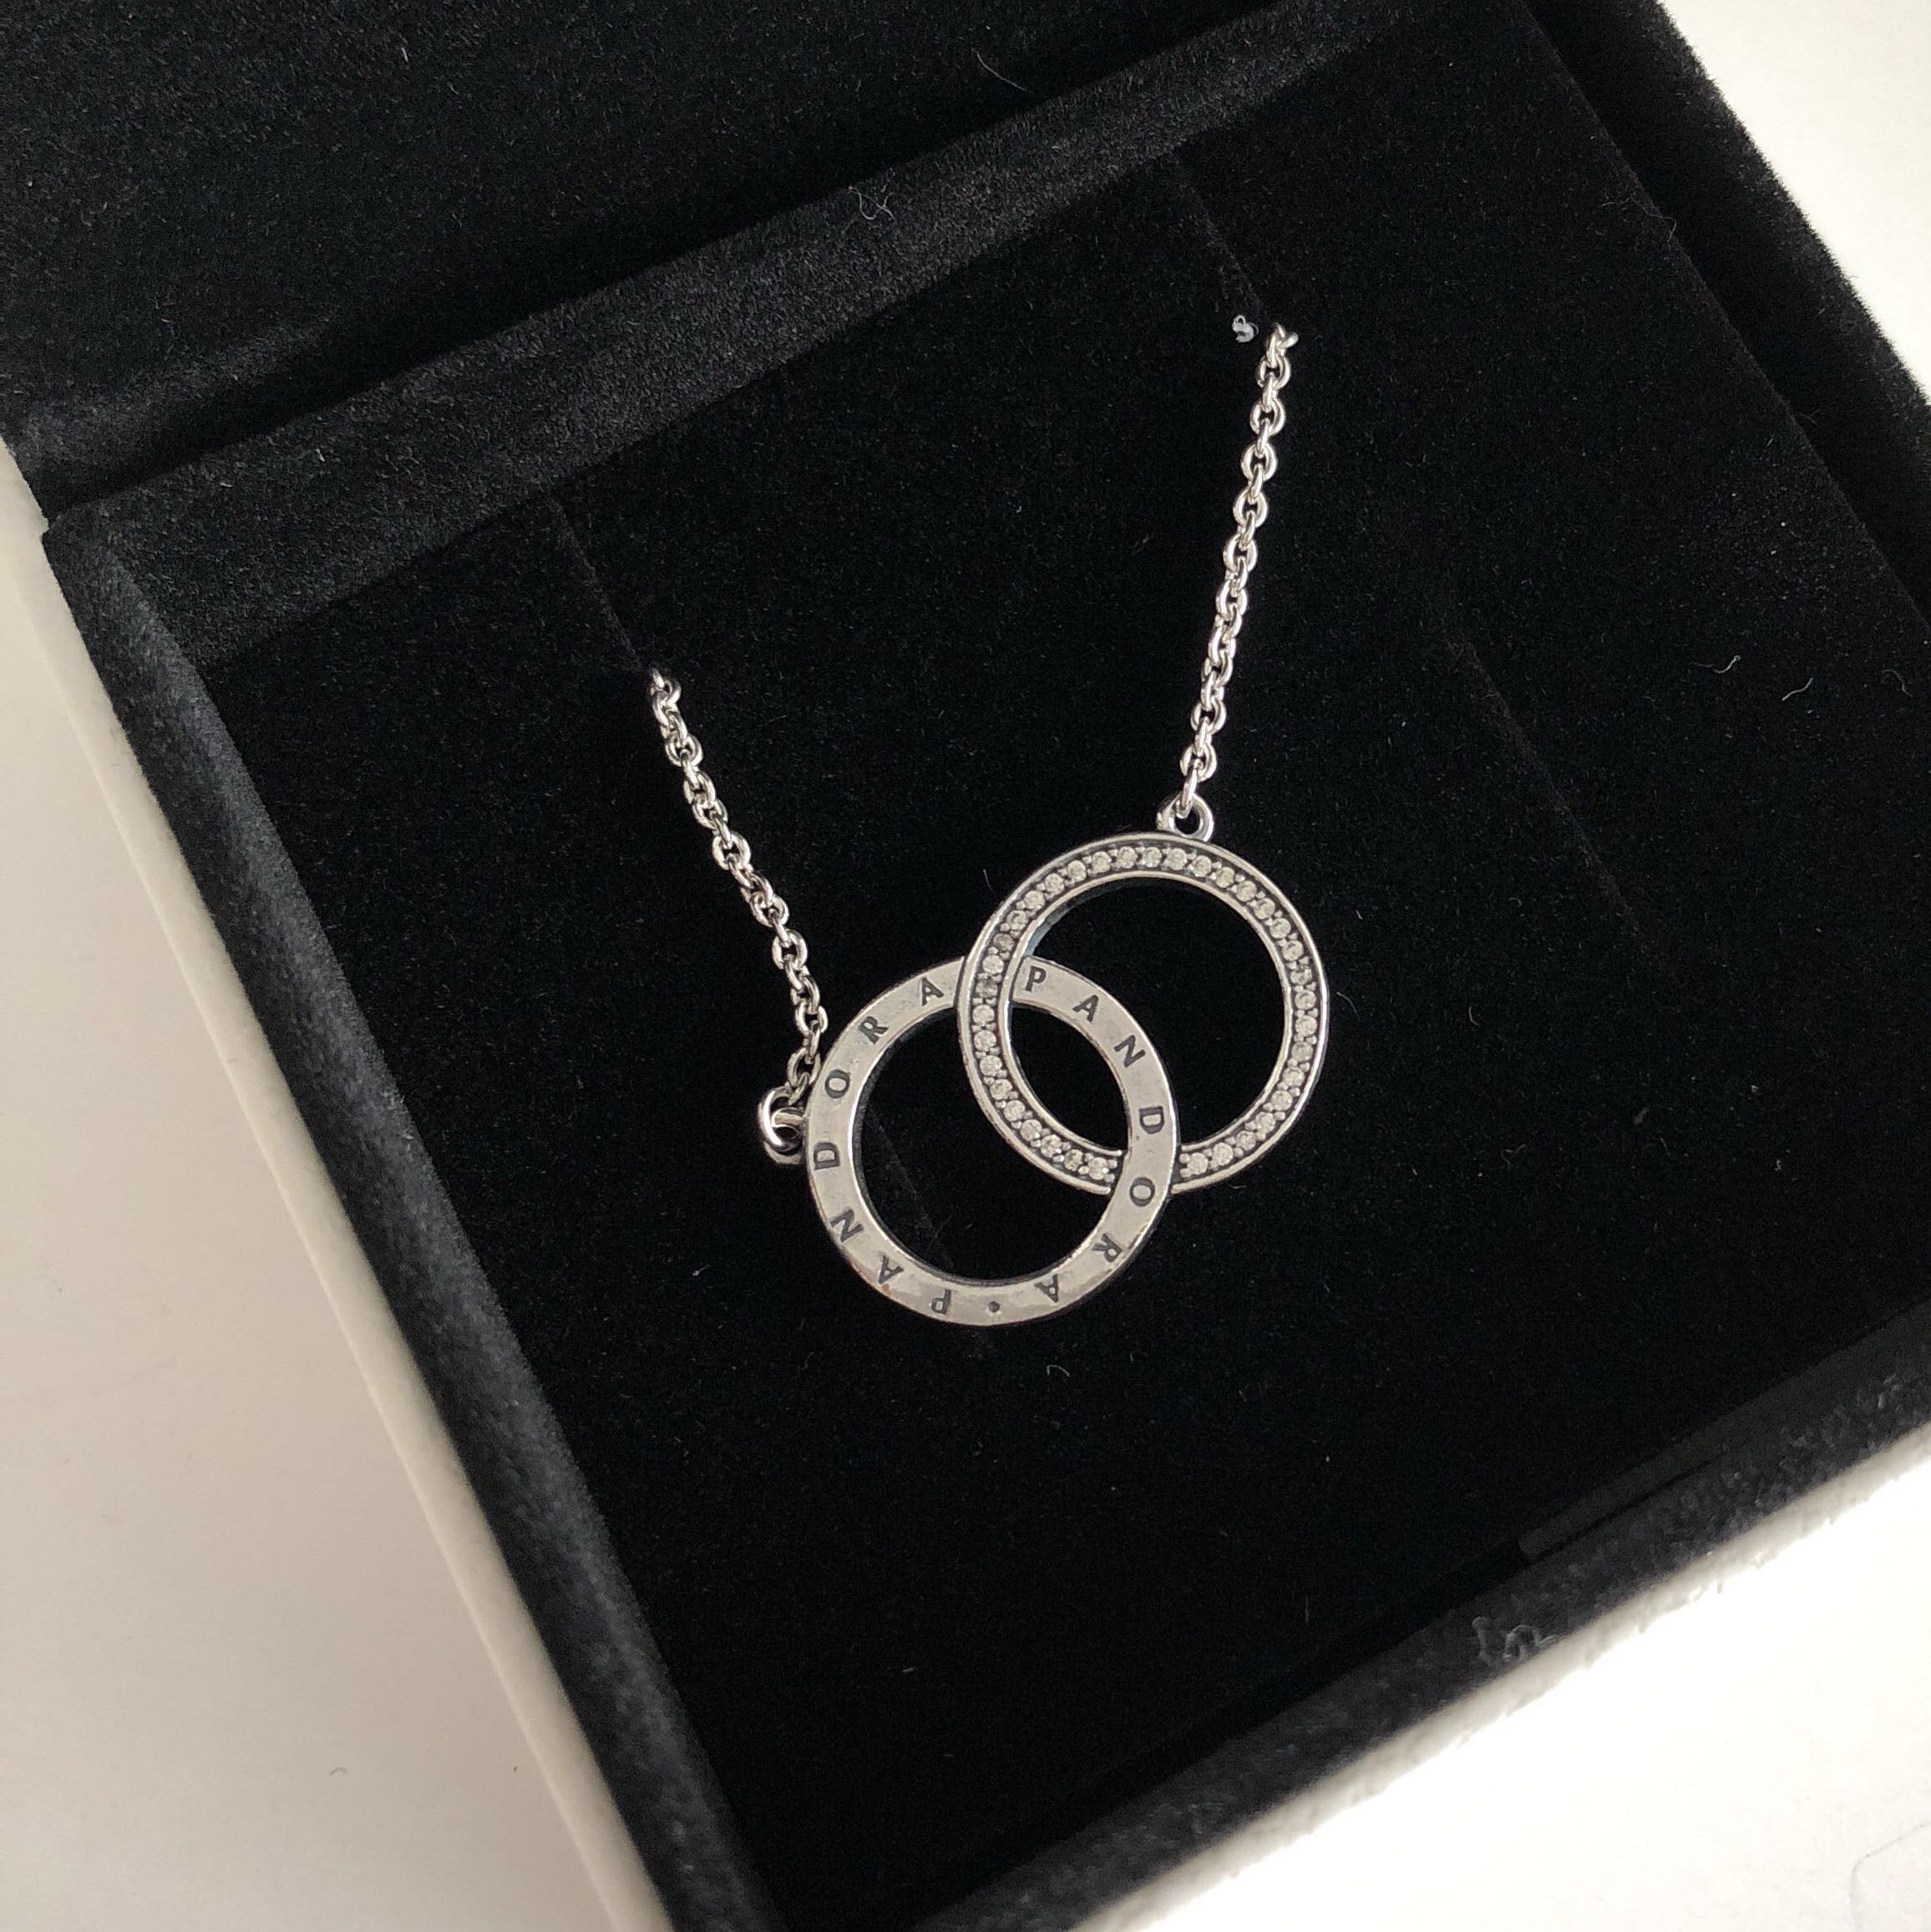 Pandora Circles Necklace, Luxury, Accessories On Carousell Pertaining To Latest Pandora Logo Circle Necklaces (View 13 of 25)